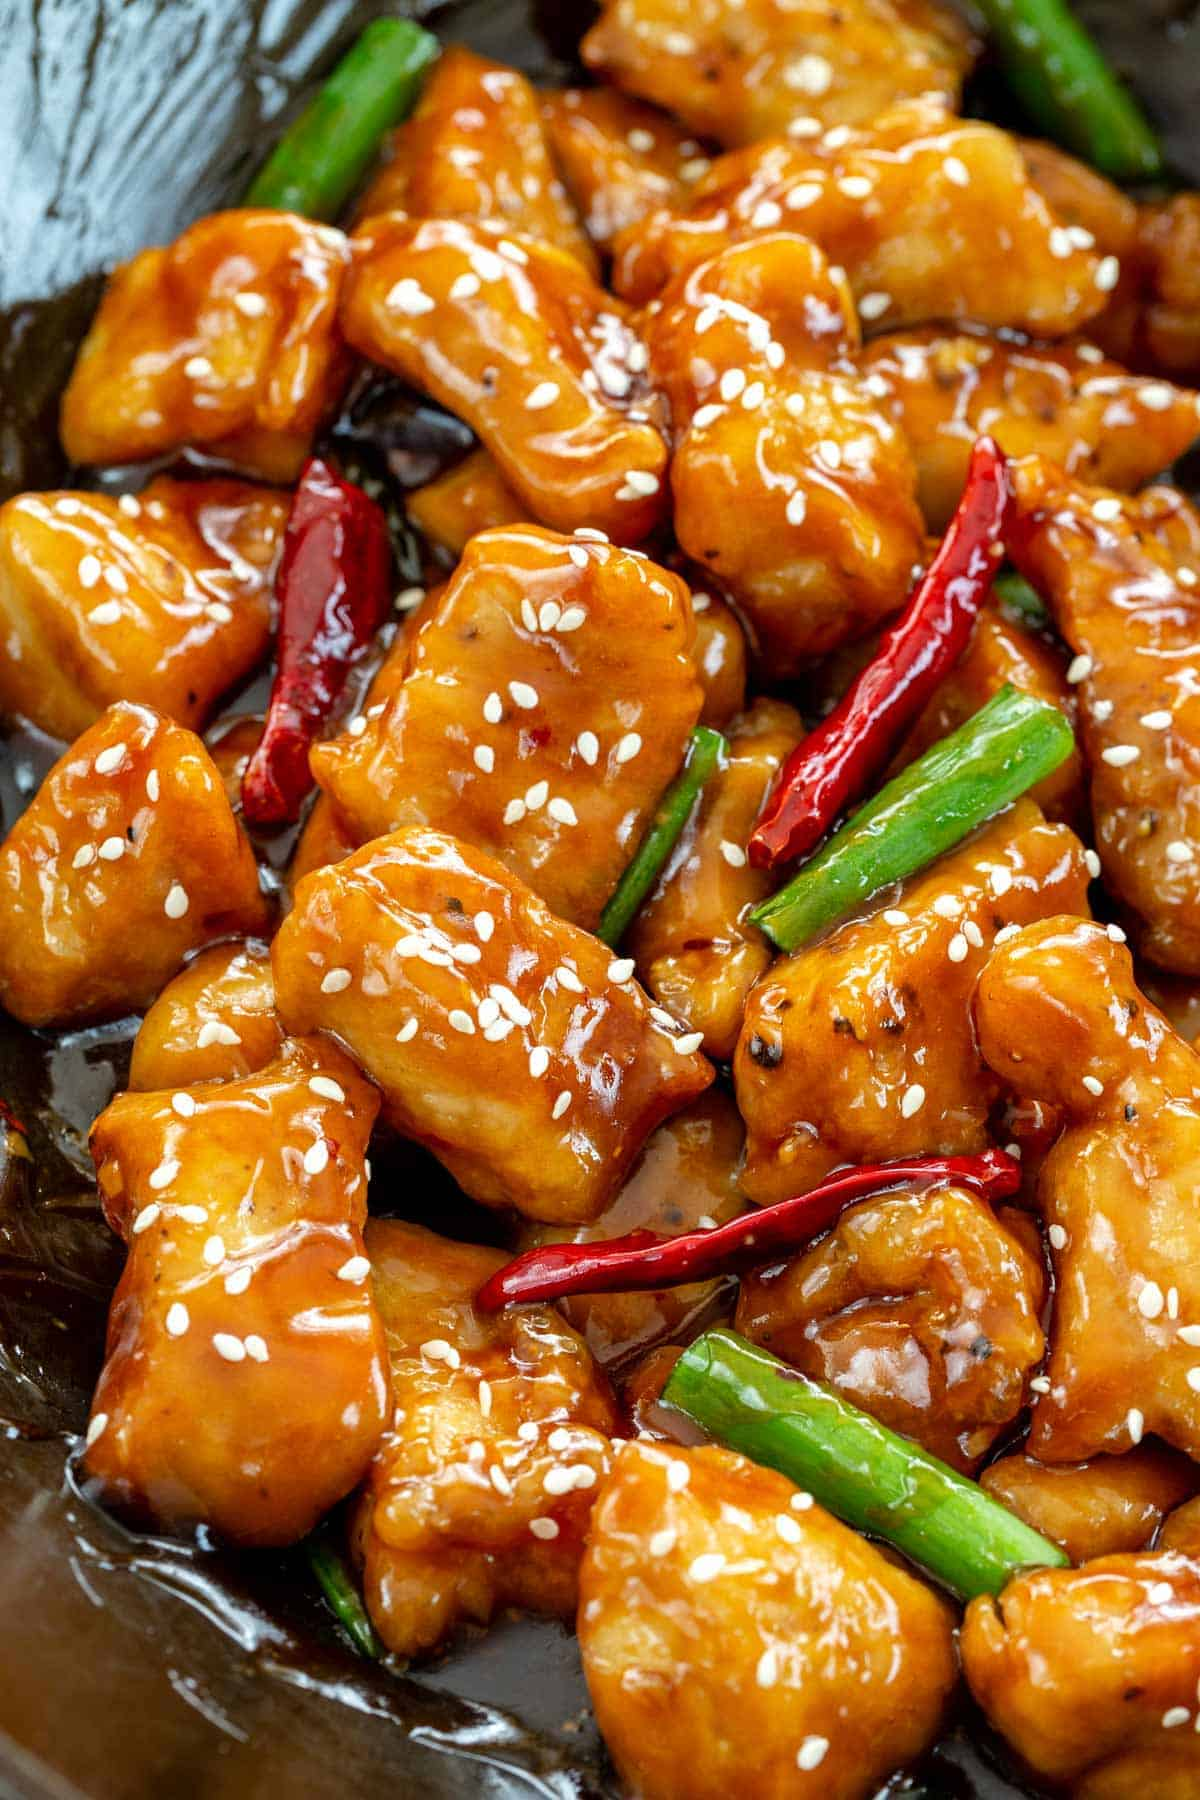 General Tso's chicken cooking in a wok